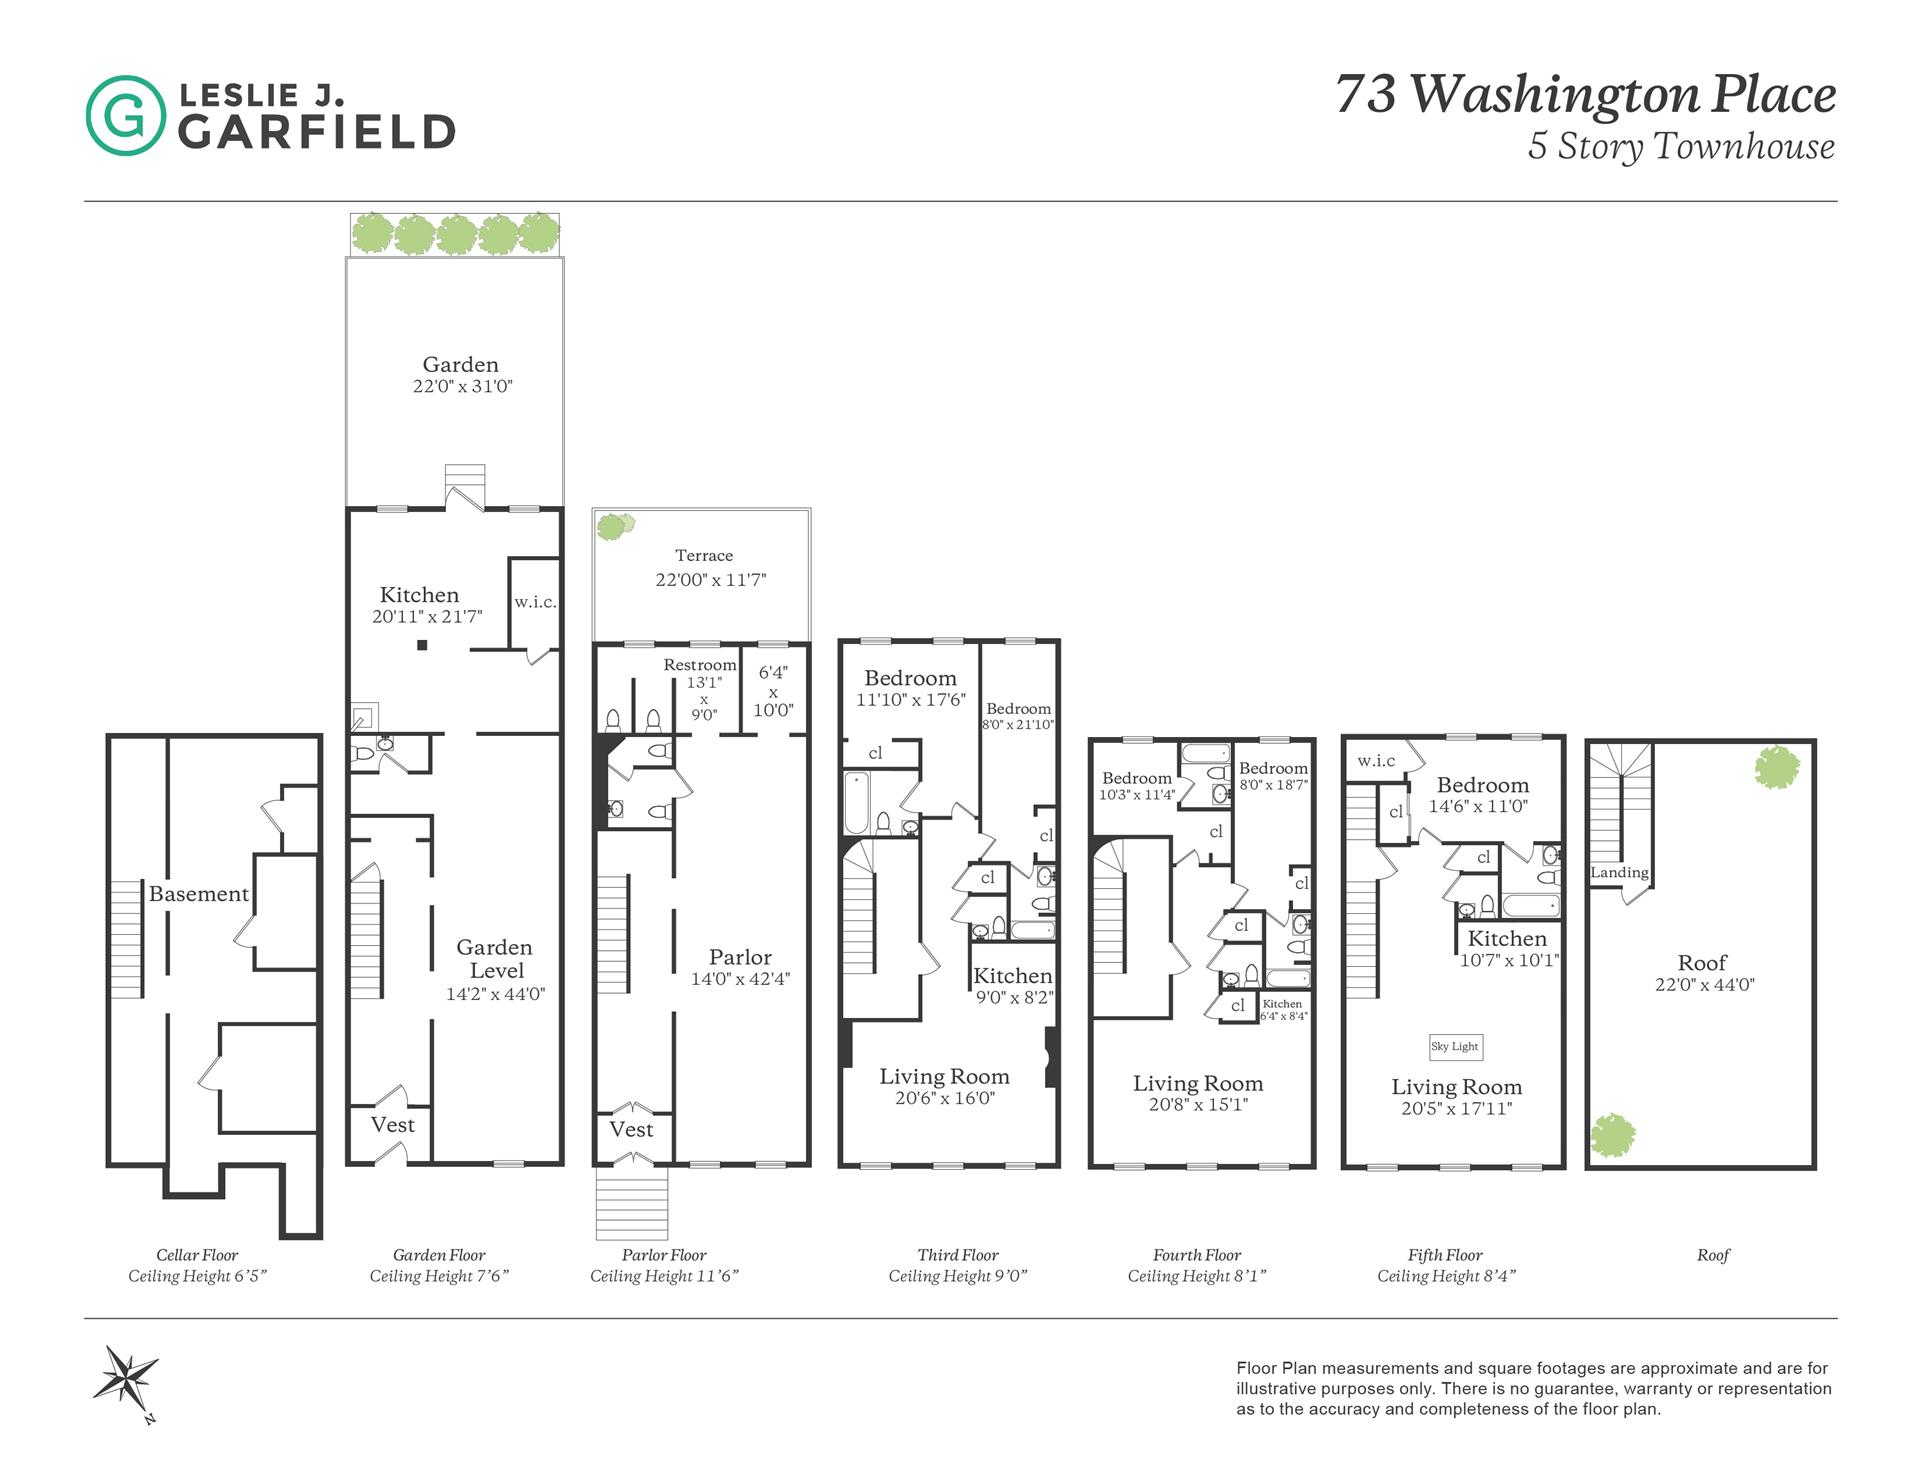 Floor plan of 73 Washington Pl - Greenwich Village, New York